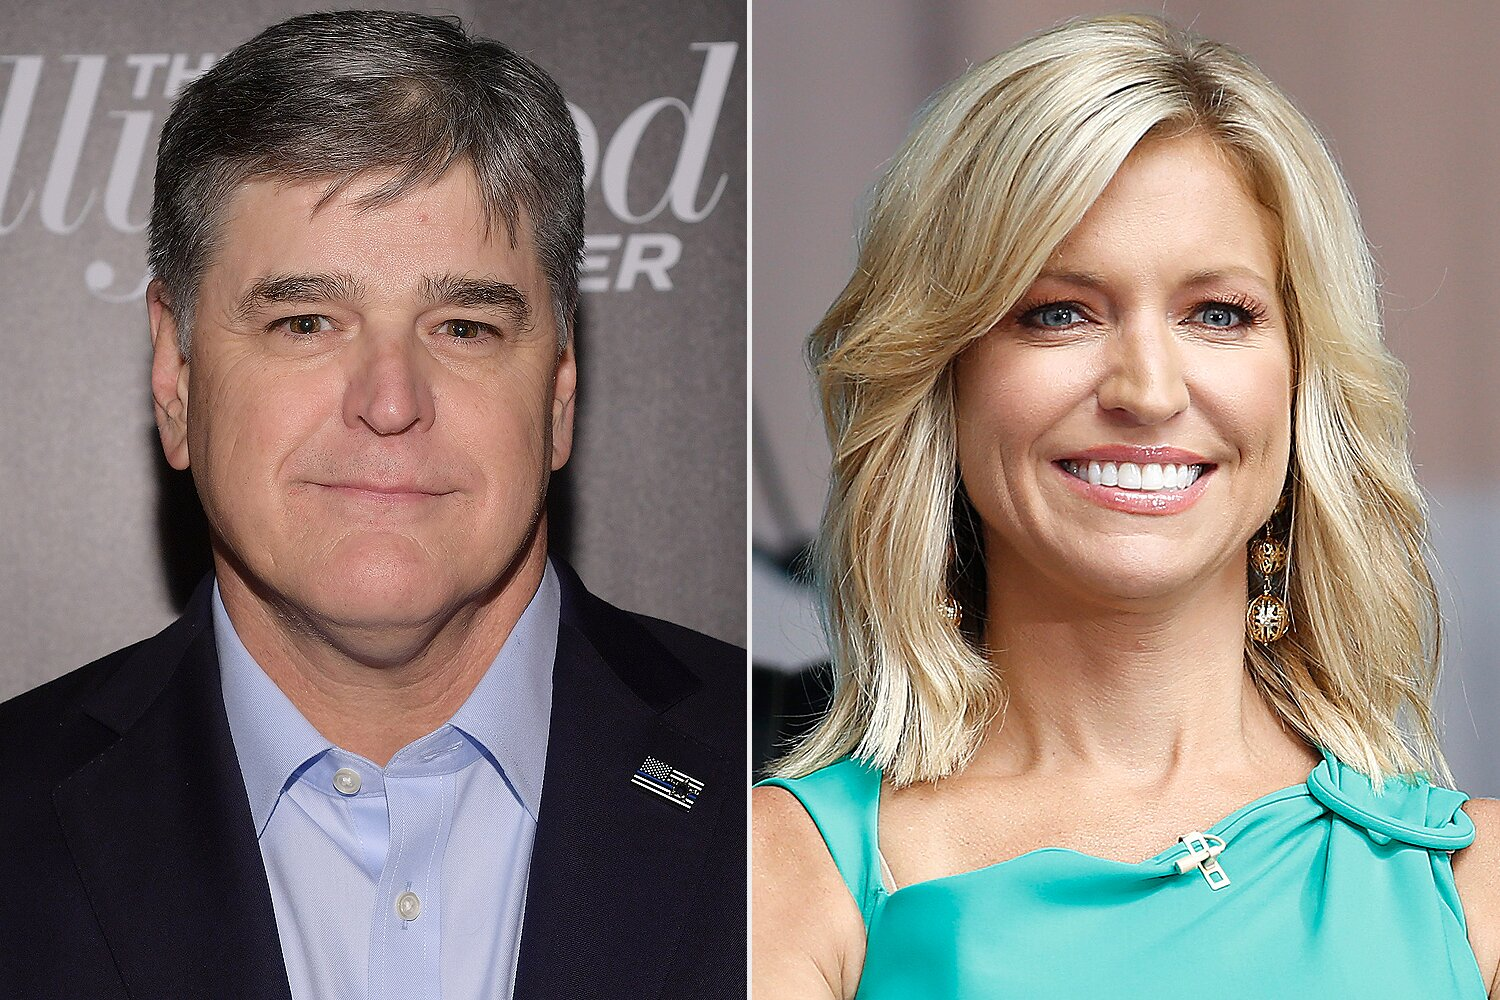 Christian and divorced Fox News hosts Sean Hannity and Ainsley Earhardt are dating and this is not a surprise